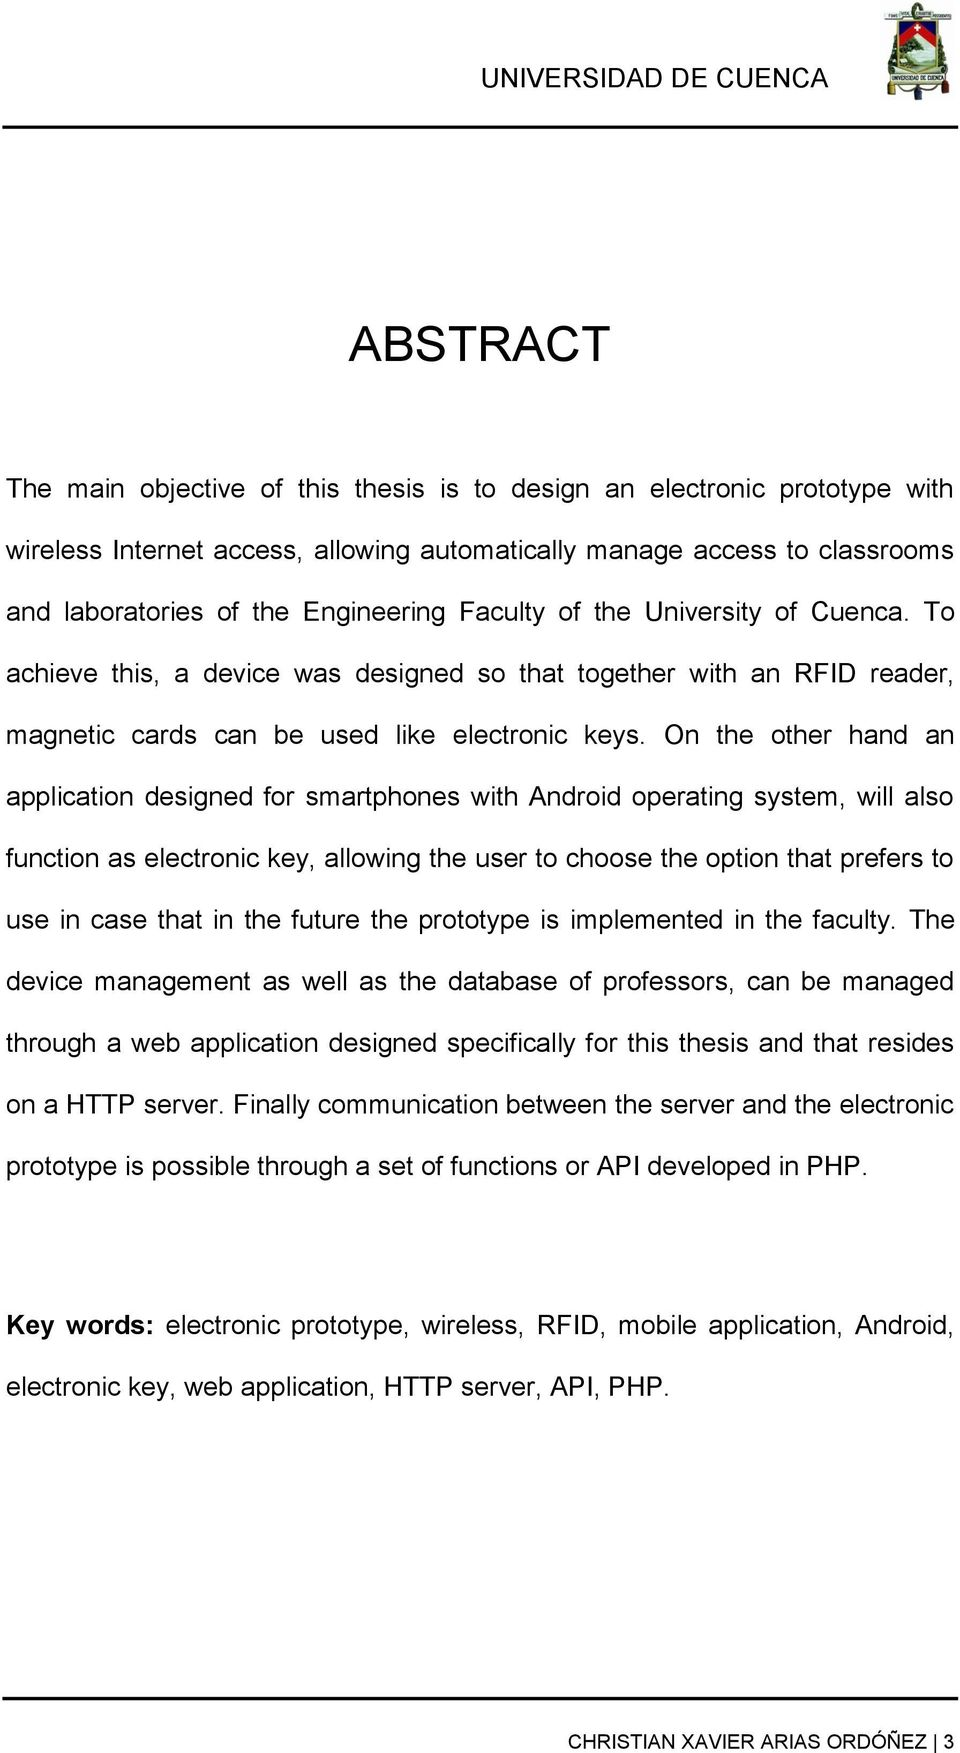 On the other hand an application designed for smartphones with Android operating system, will also function as electronic key, allowing the user to choose the option that prefers to use in case that